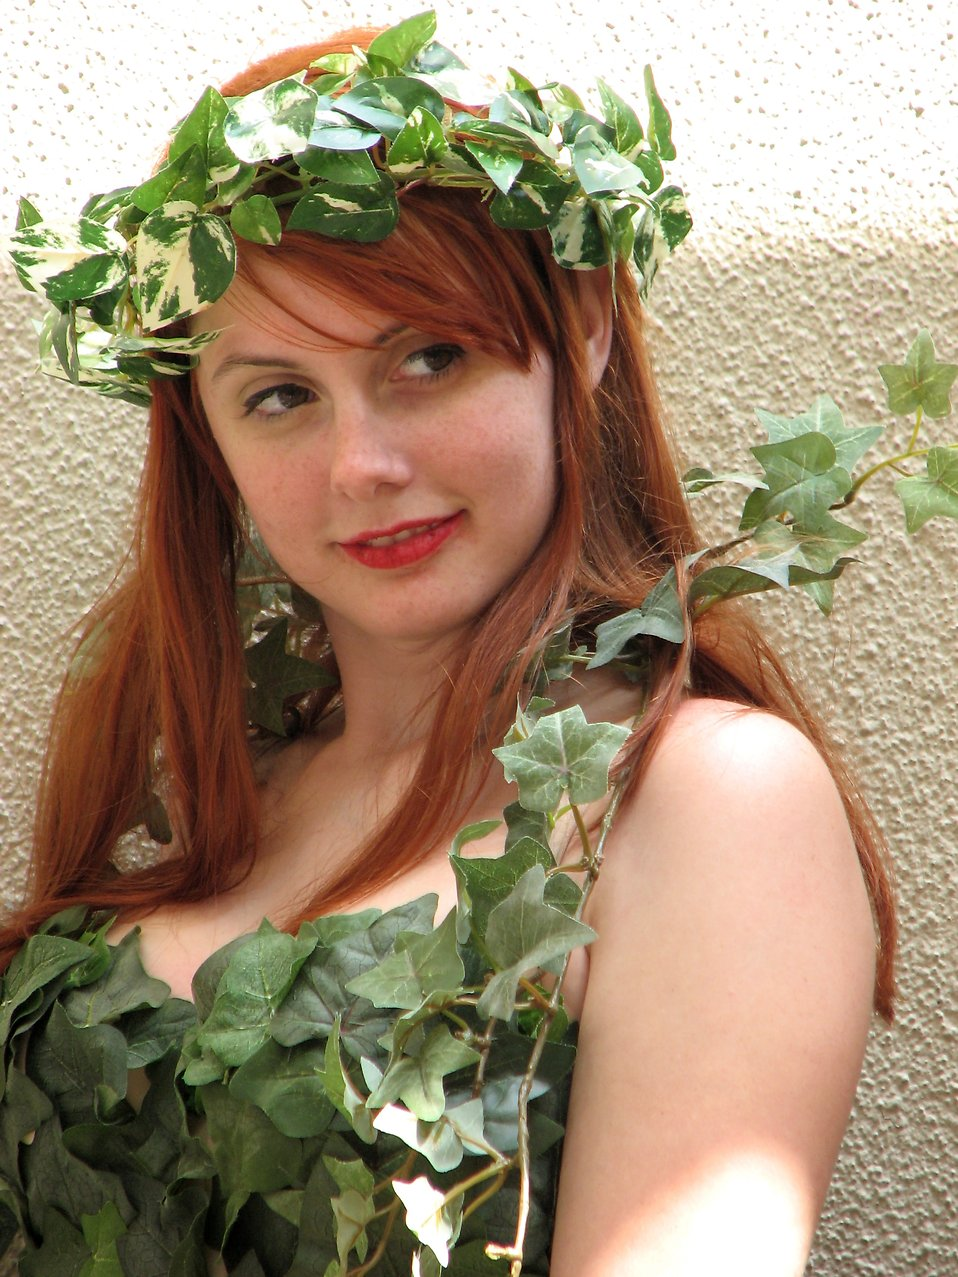 Beautiful girl posing in nature costume at Dragoncon 2008 : Free Stock Photo